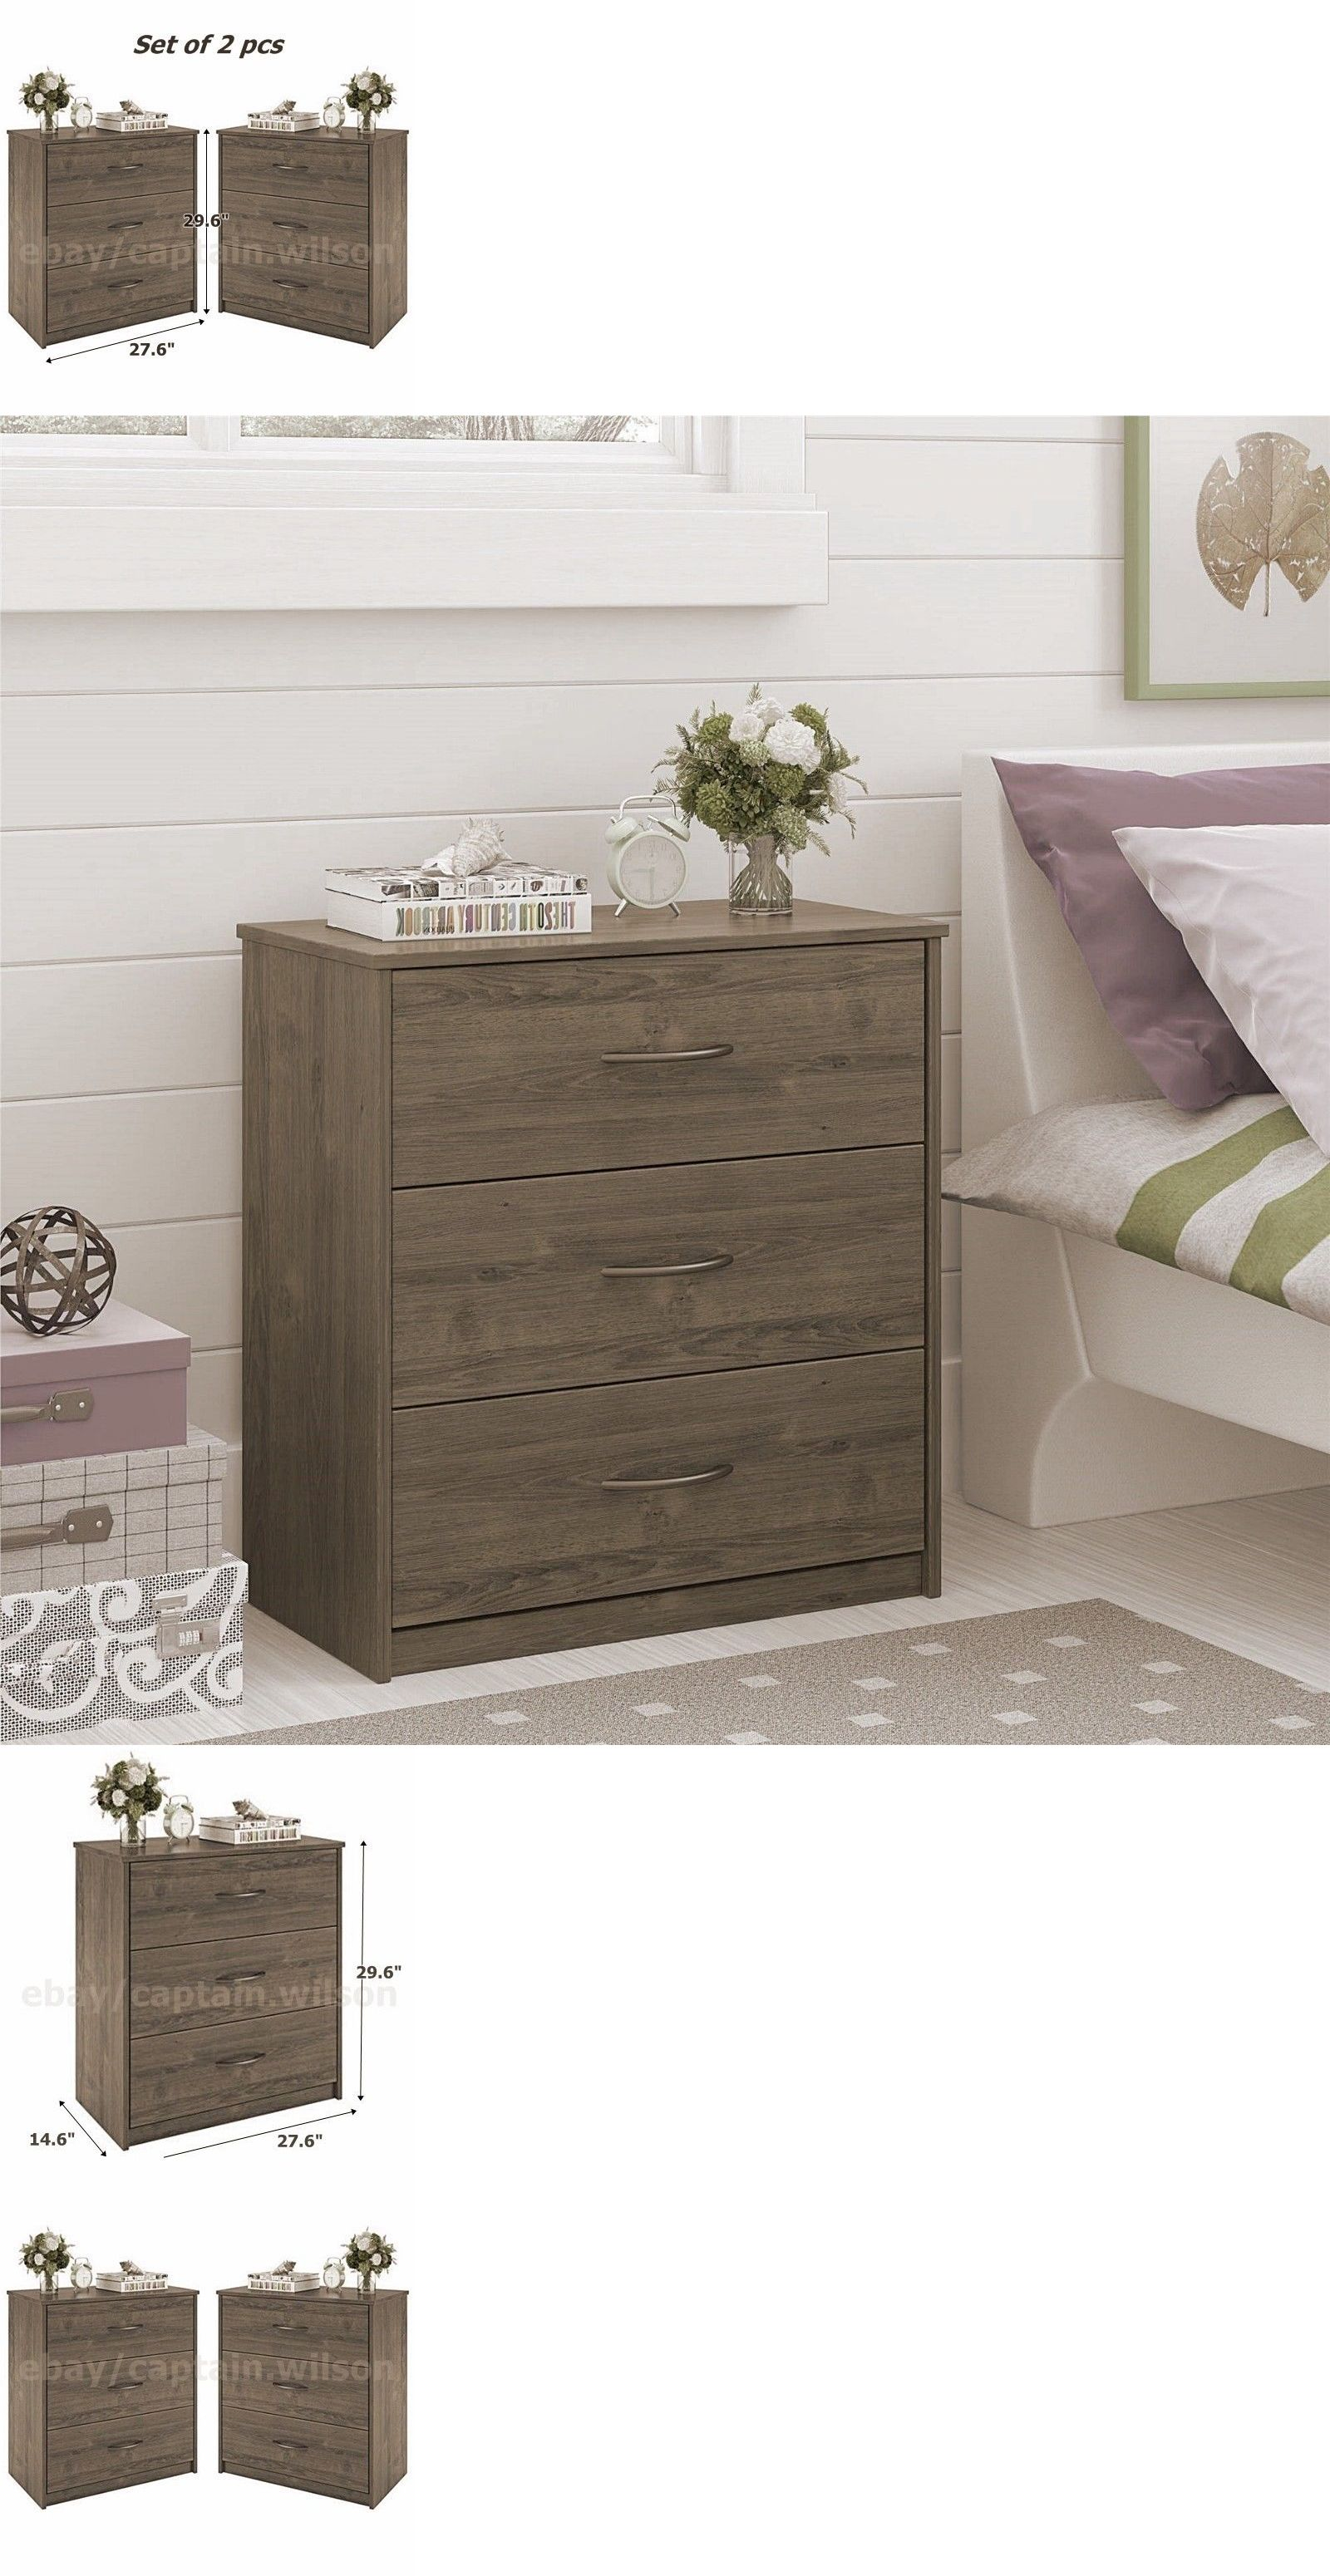 Dressers and chests of drawers 114397 nightstands or dresser set of 2 pcs 3 drawers bedroom light brow rustic oak buy it now only 155 91 on ebay